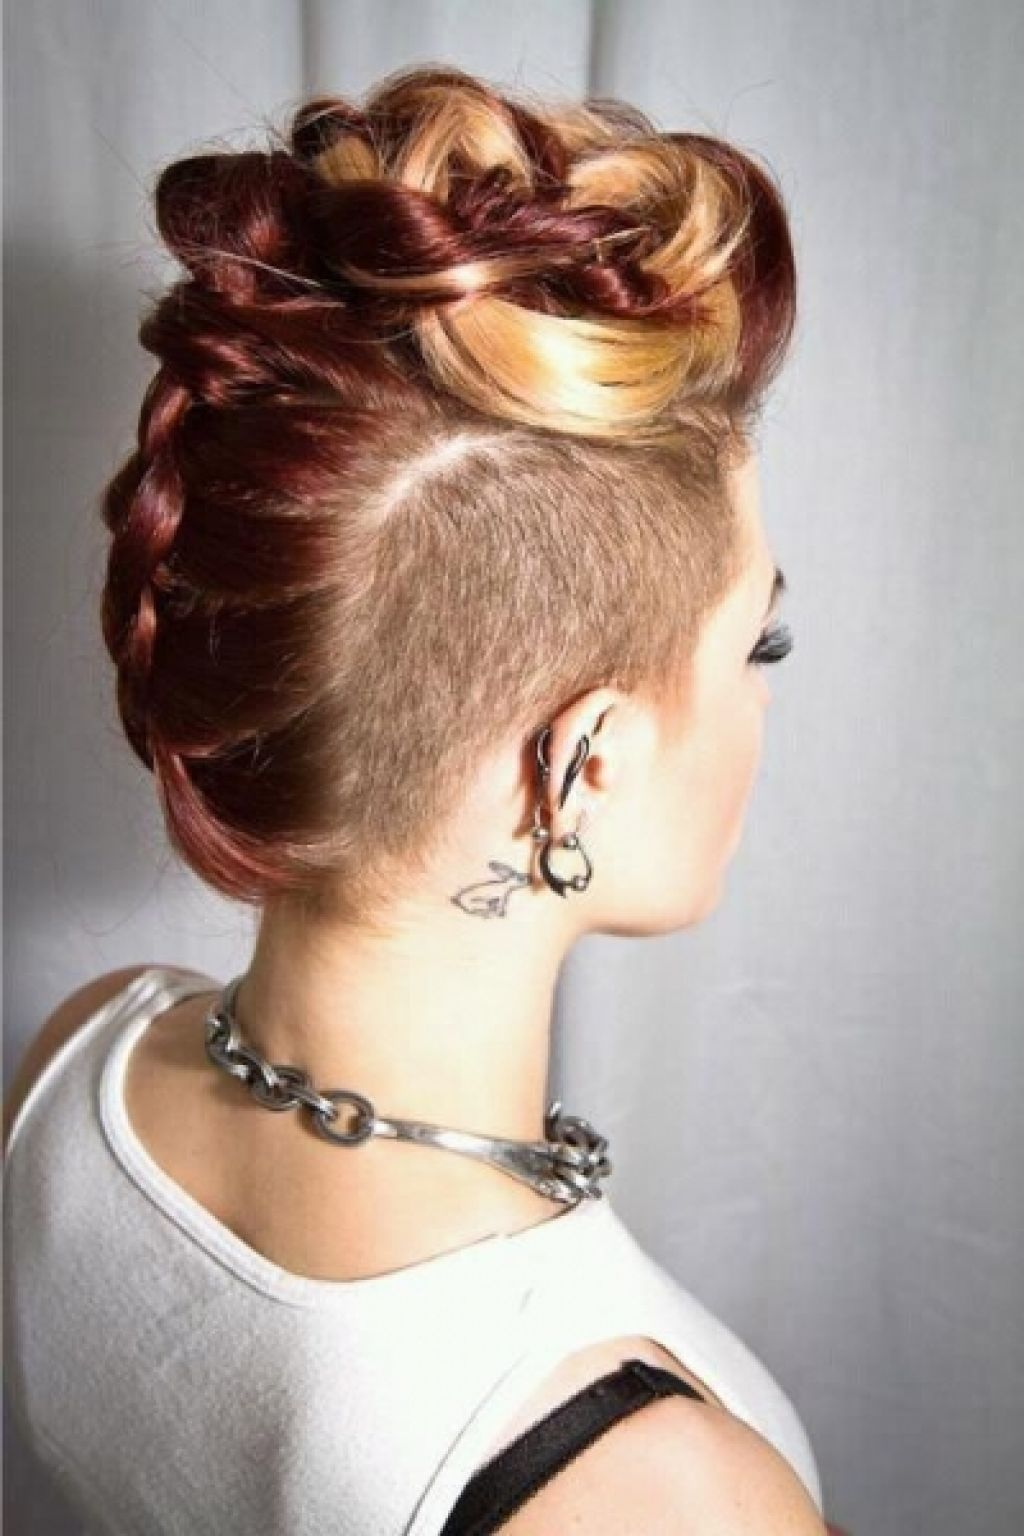 Pin by jodi wysocki on wedding pinterest mohawks weddings and